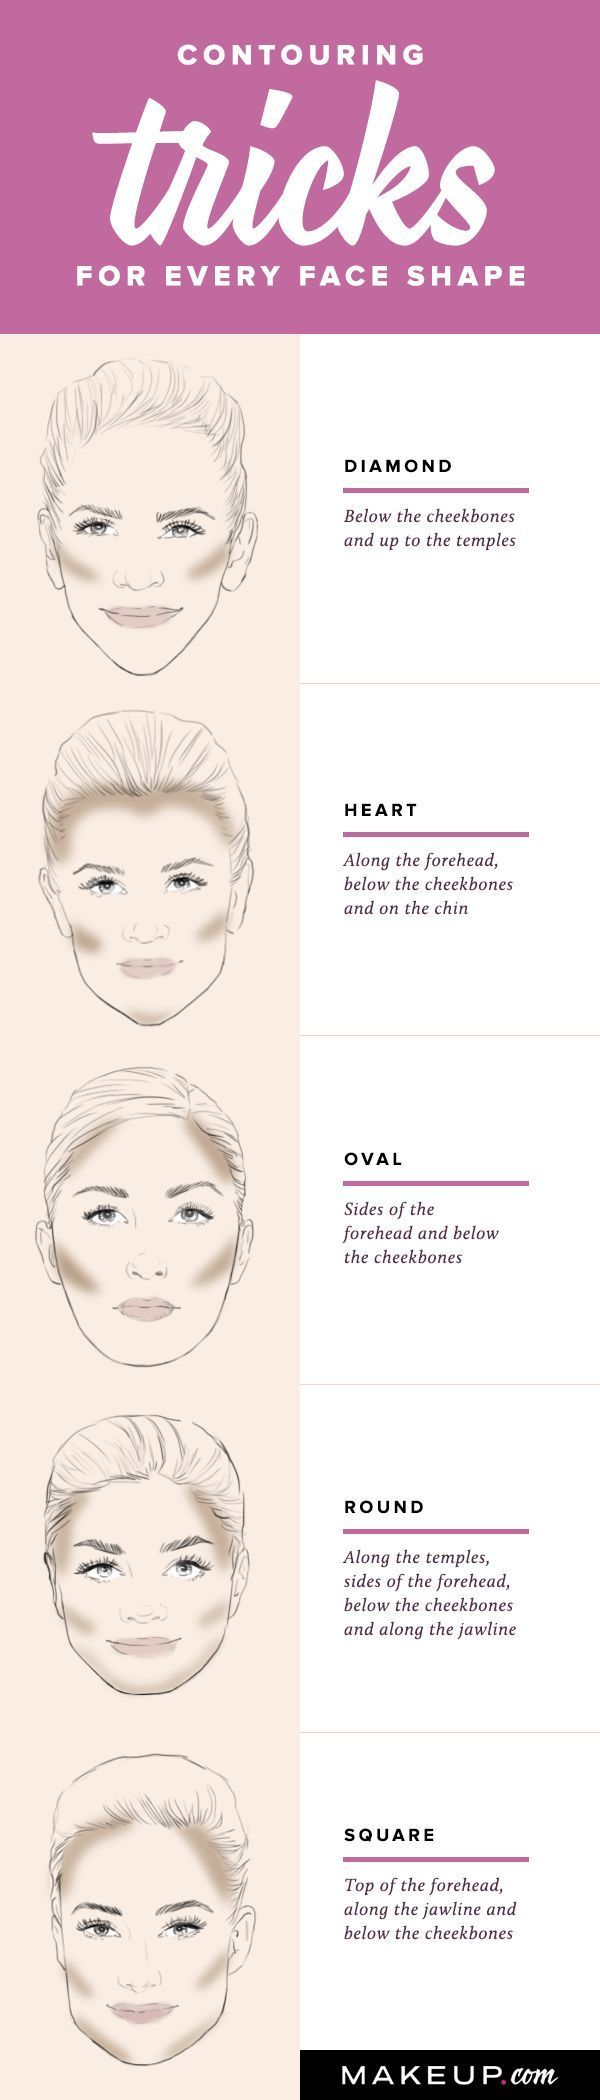 The perfect guide!  LASULA LOVES  find what suits your face, don't just copy the traditional.